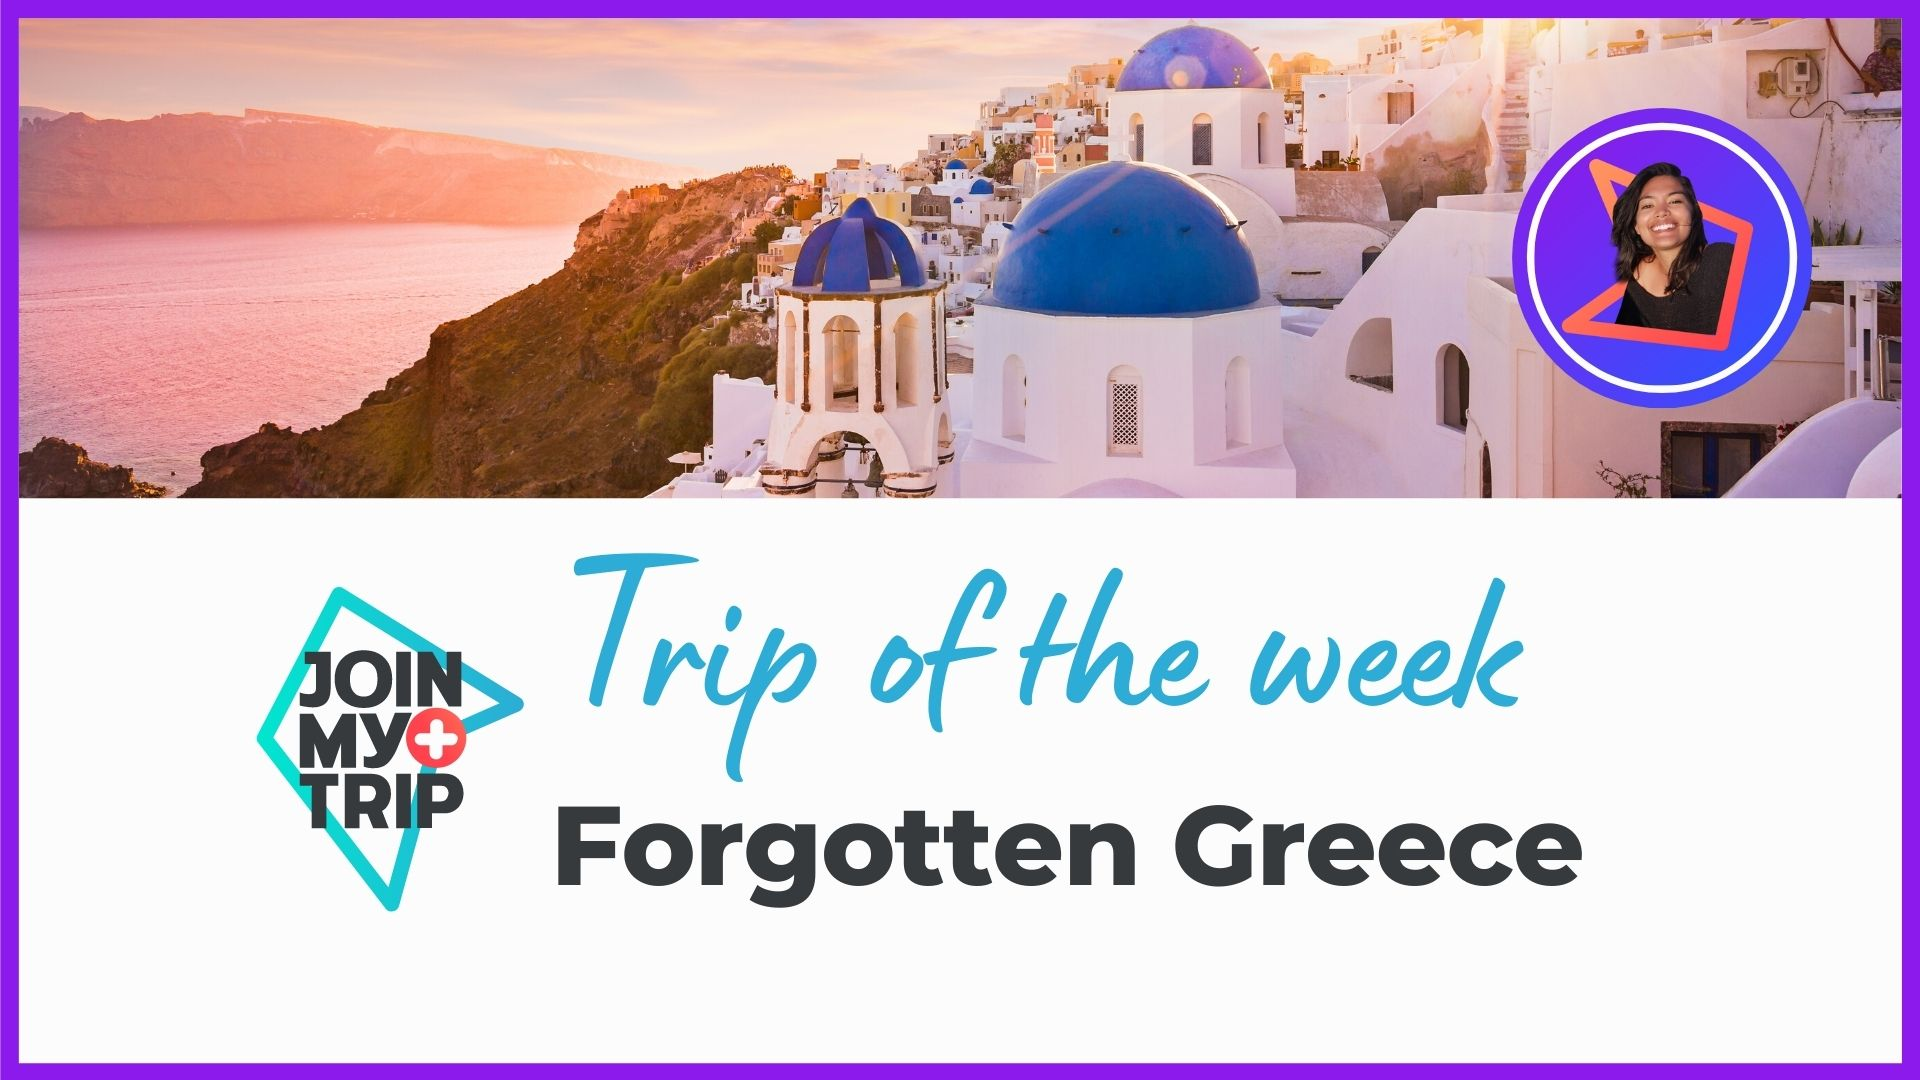 Forgotten Greece on the trip of the week youtube show.